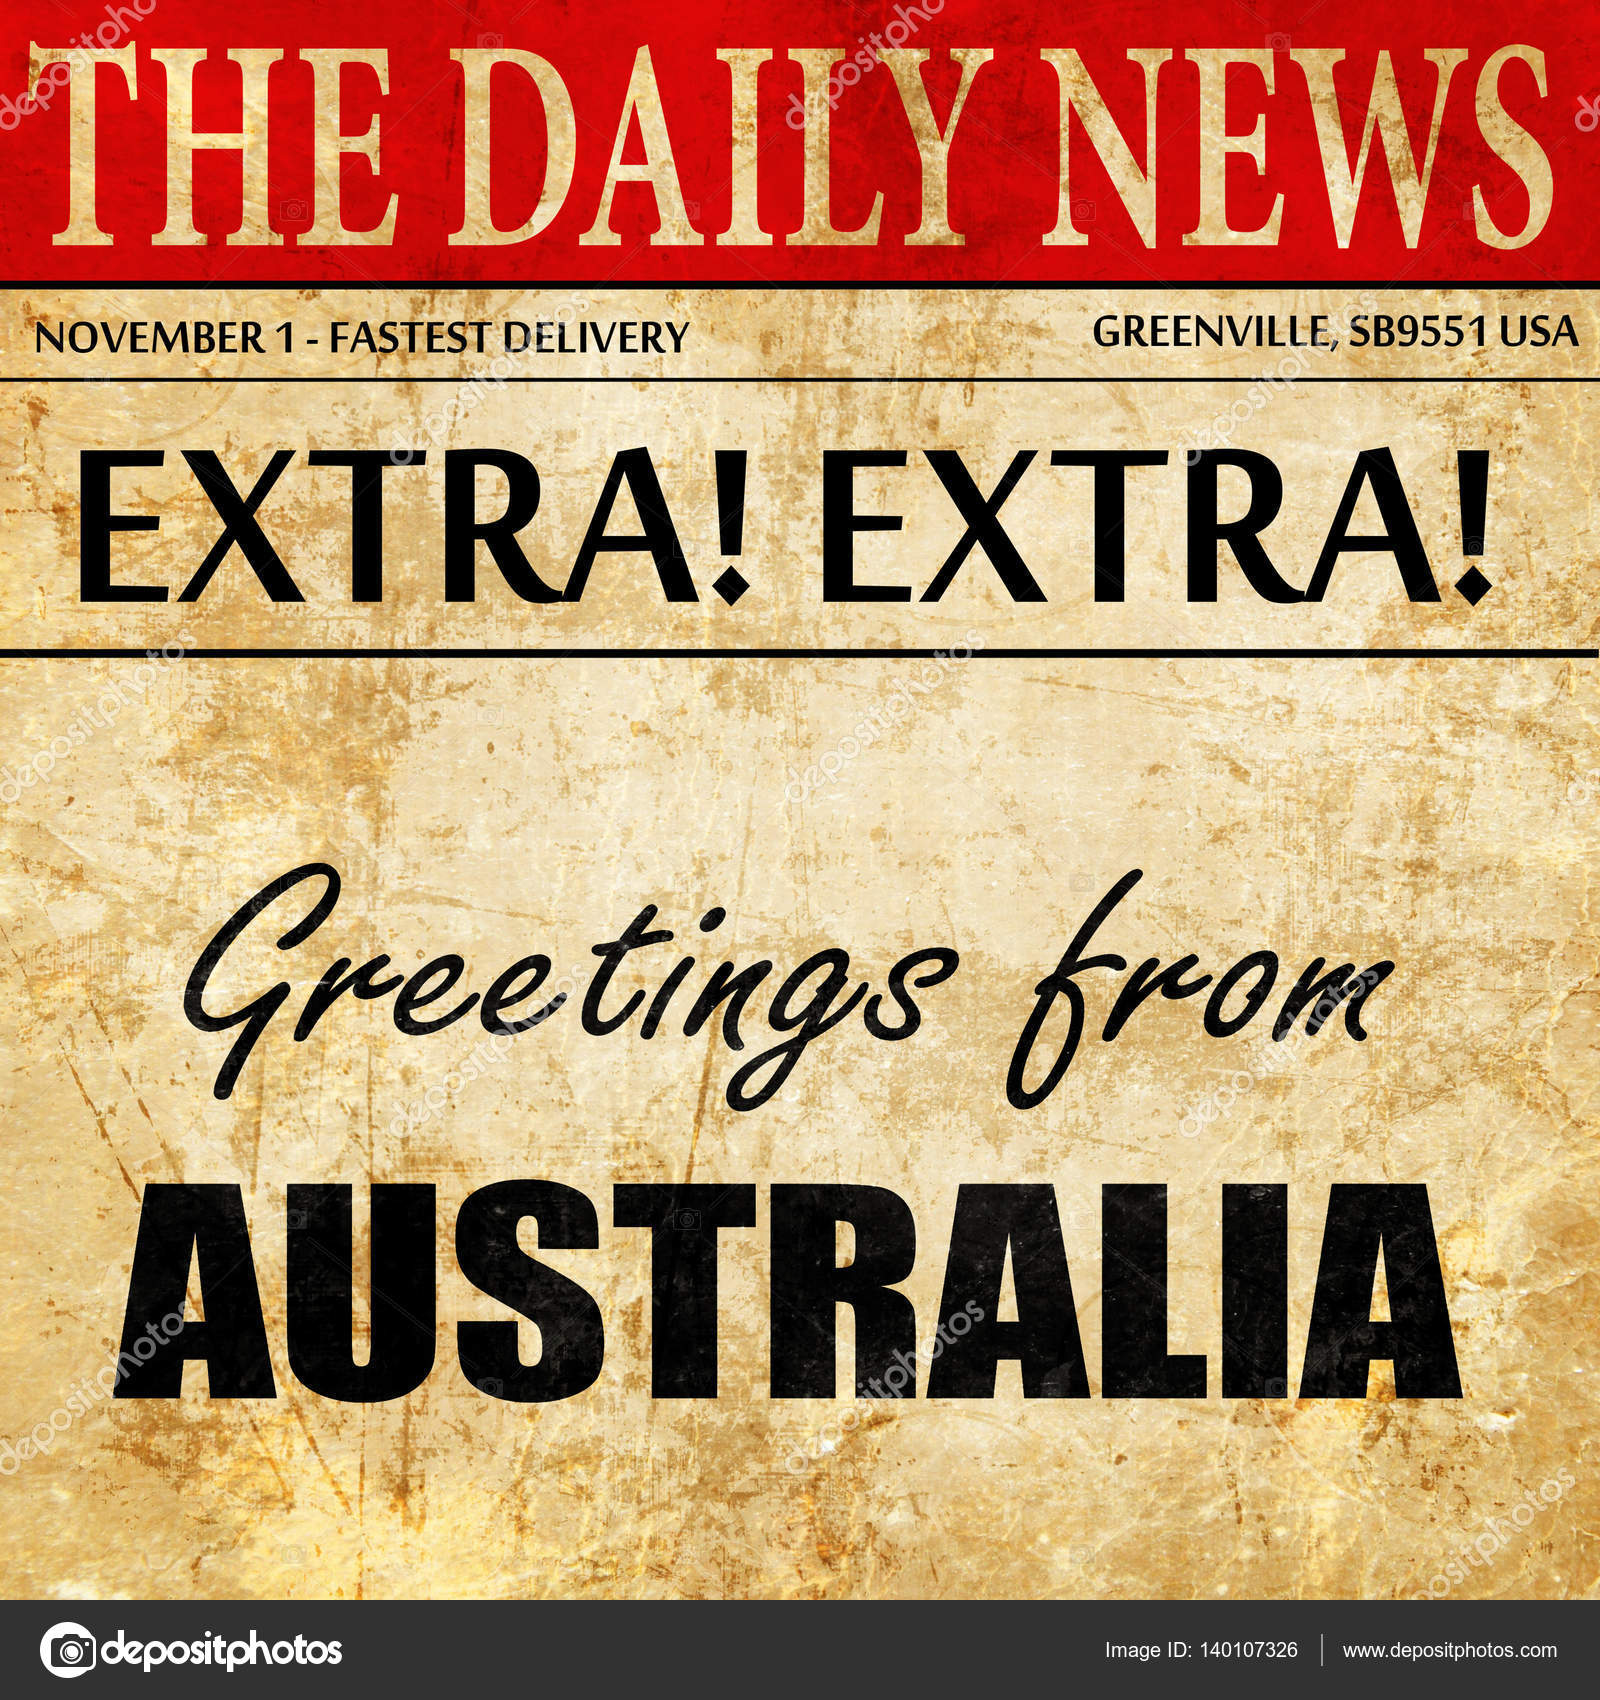 Greetings From Australia Newspaper Article Text Stock Photo